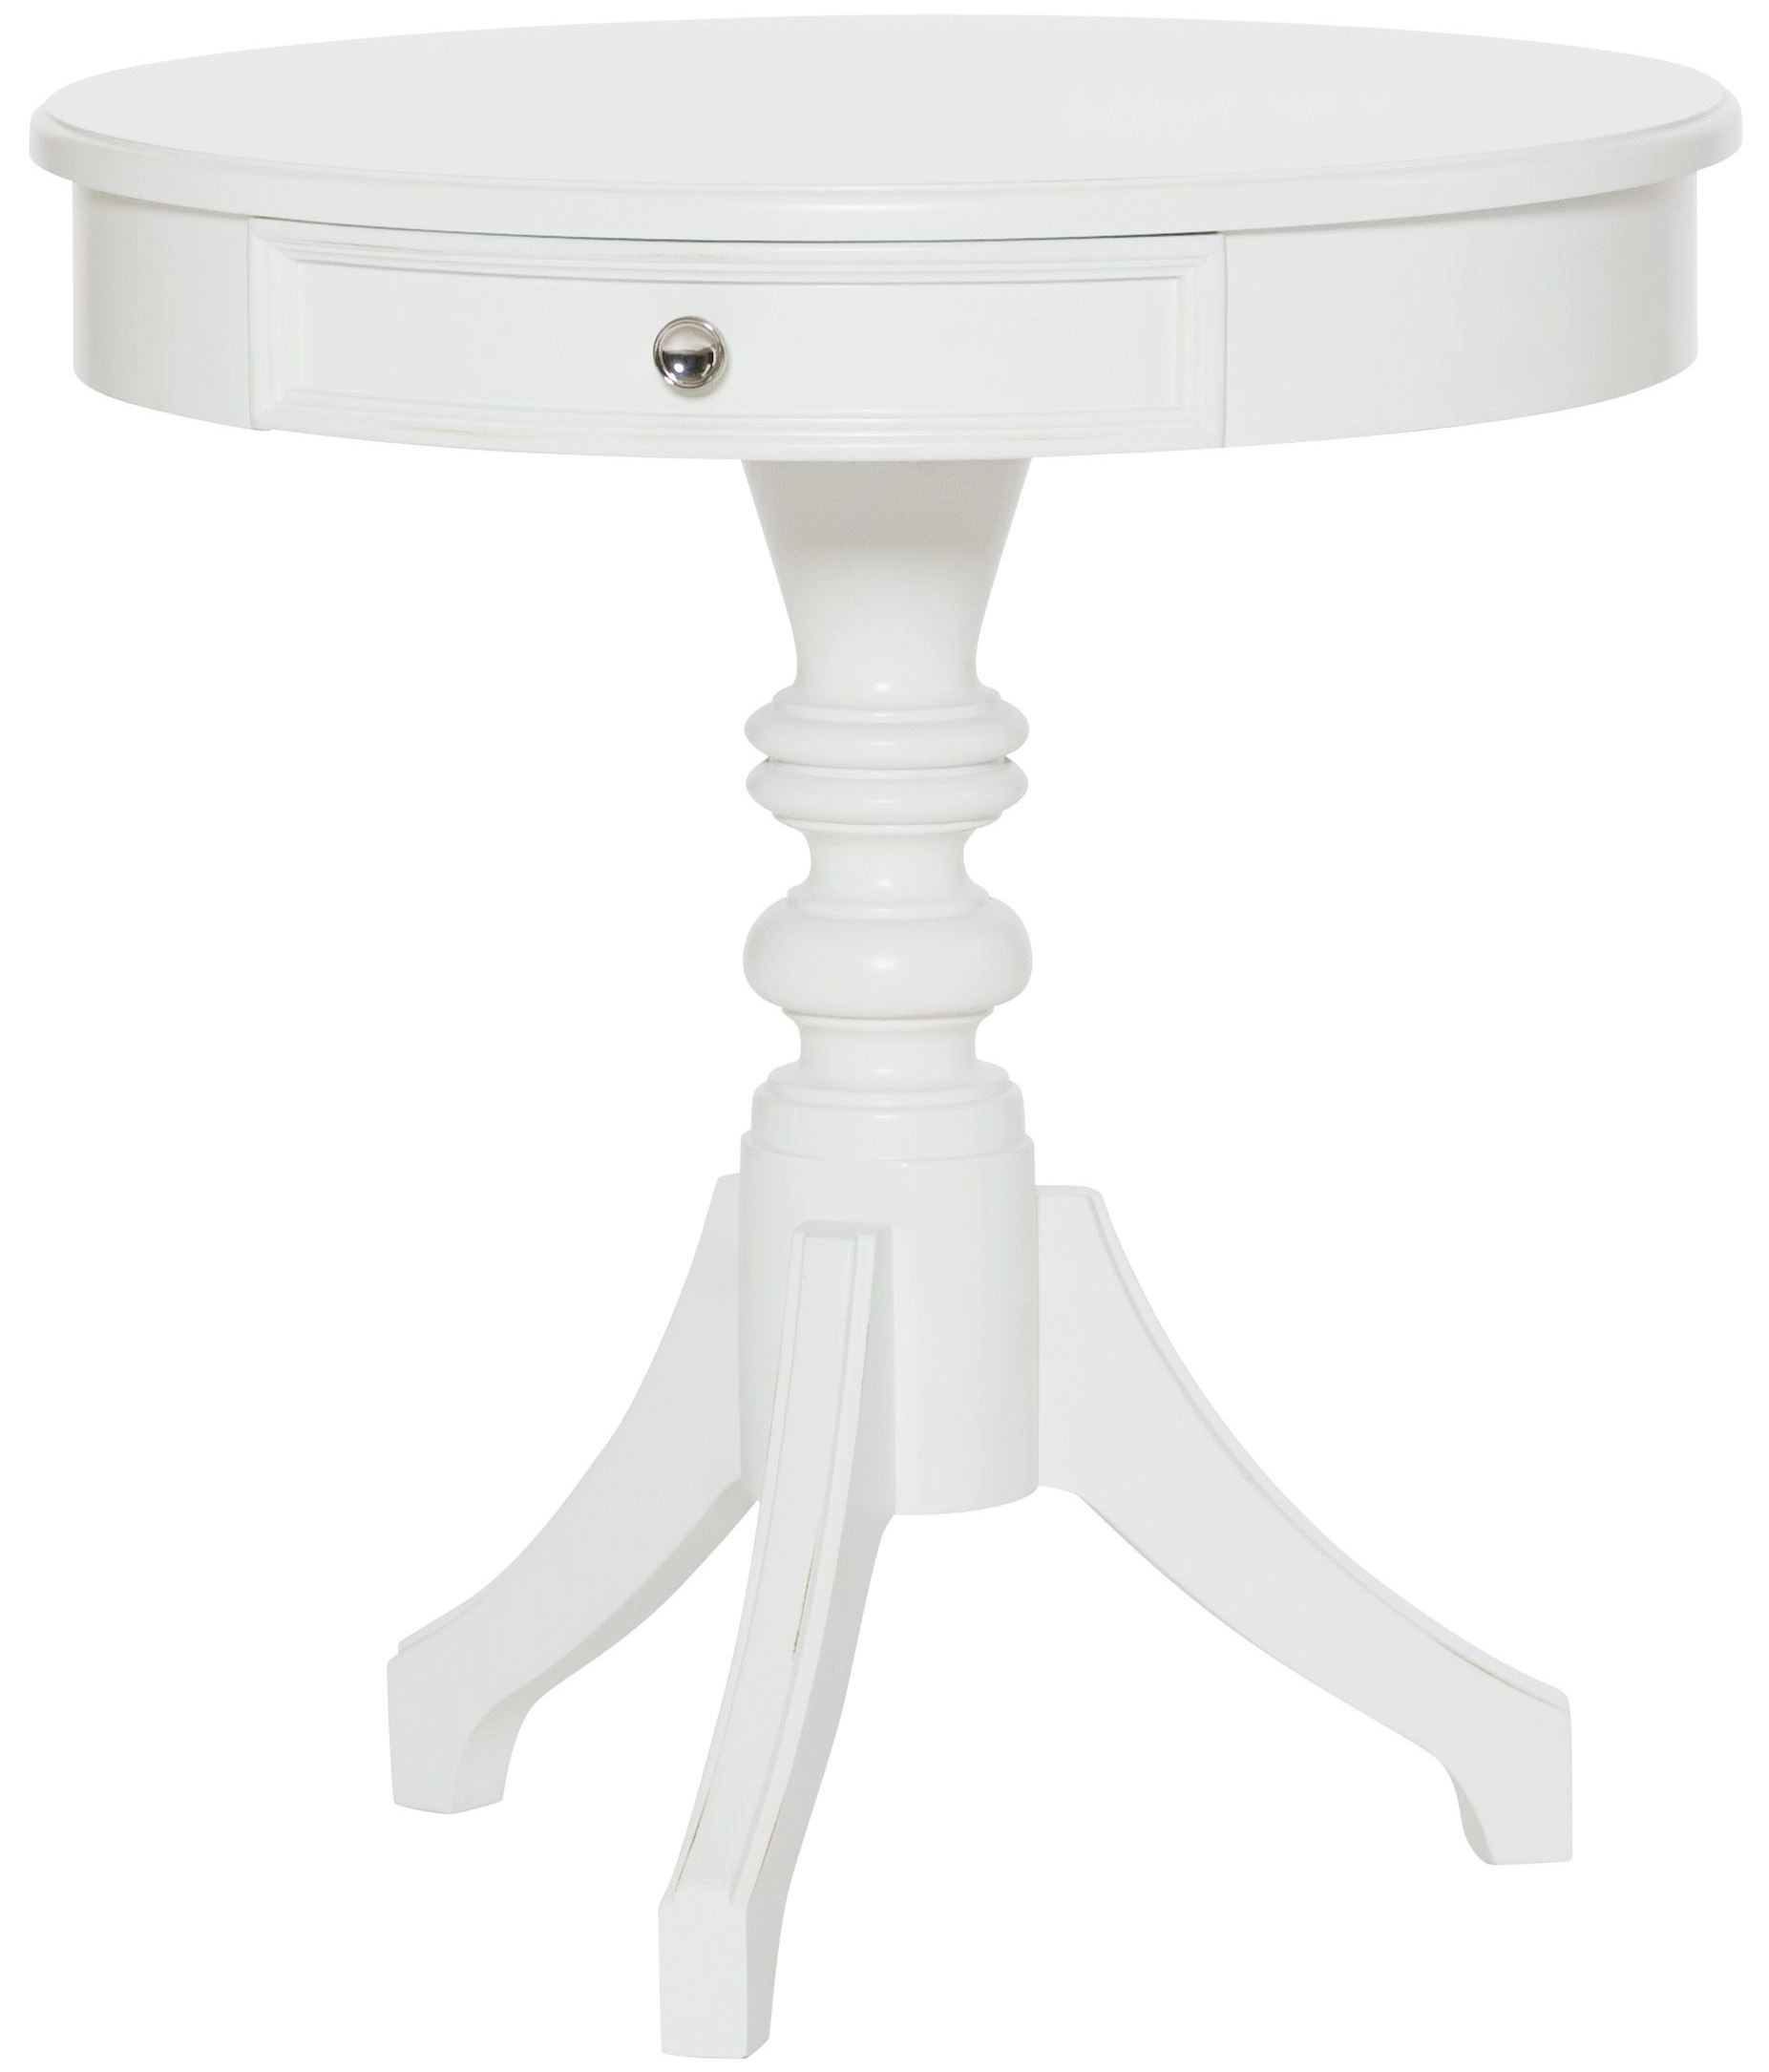 lynn haven soft dover white round accent table from american drew 416 916 coleman furniture. Black Bedroom Furniture Sets. Home Design Ideas